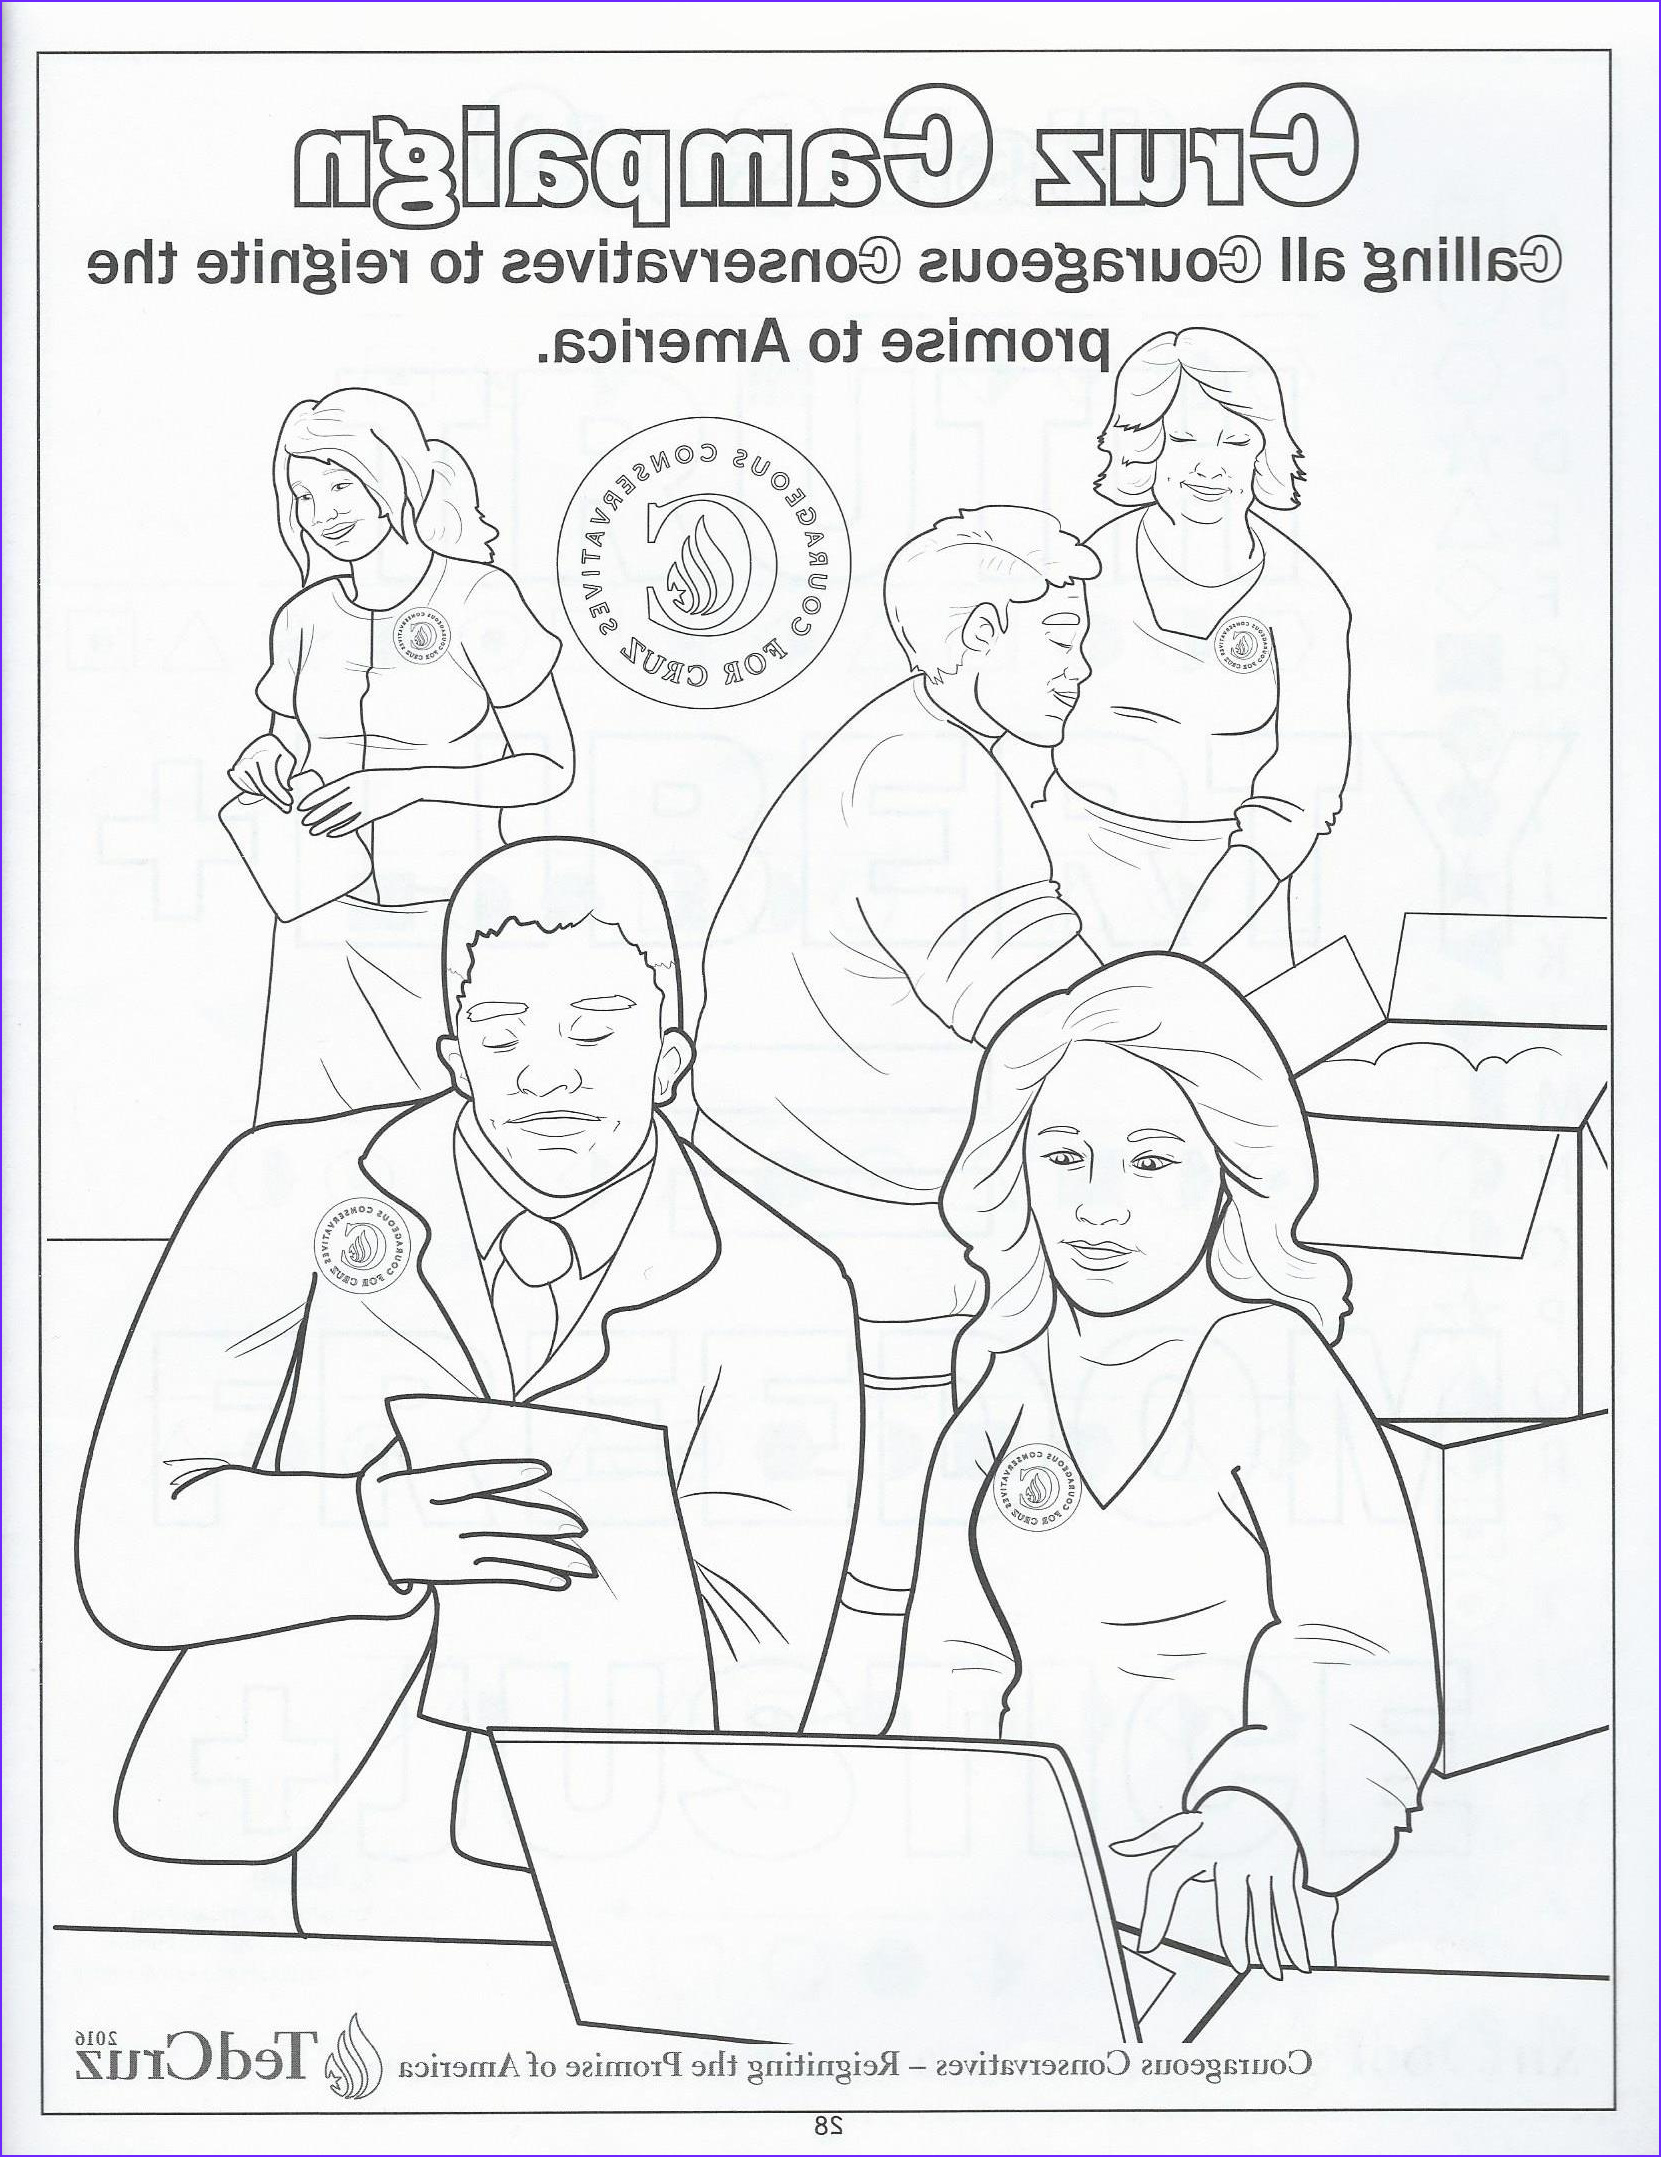 Cruz Coloring Book Awesome Photos We Review Ted Cruz S Ridiculous Children S Coloring Book